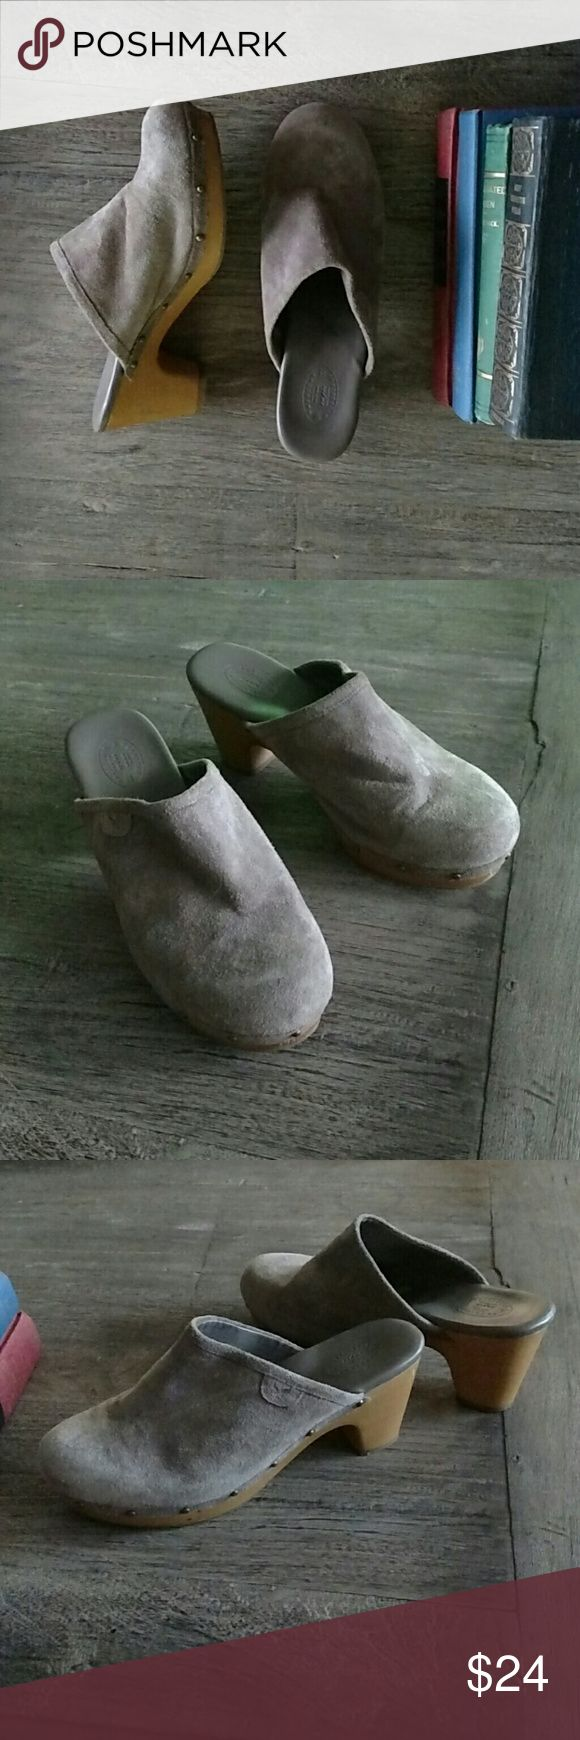 TODAY ONLY!!  Suede Clogs by American Outfitters Taupe colored suede clogs by American Outfitters with leather upper and man made sole. American Outfitters Shoes Mules & Clogs